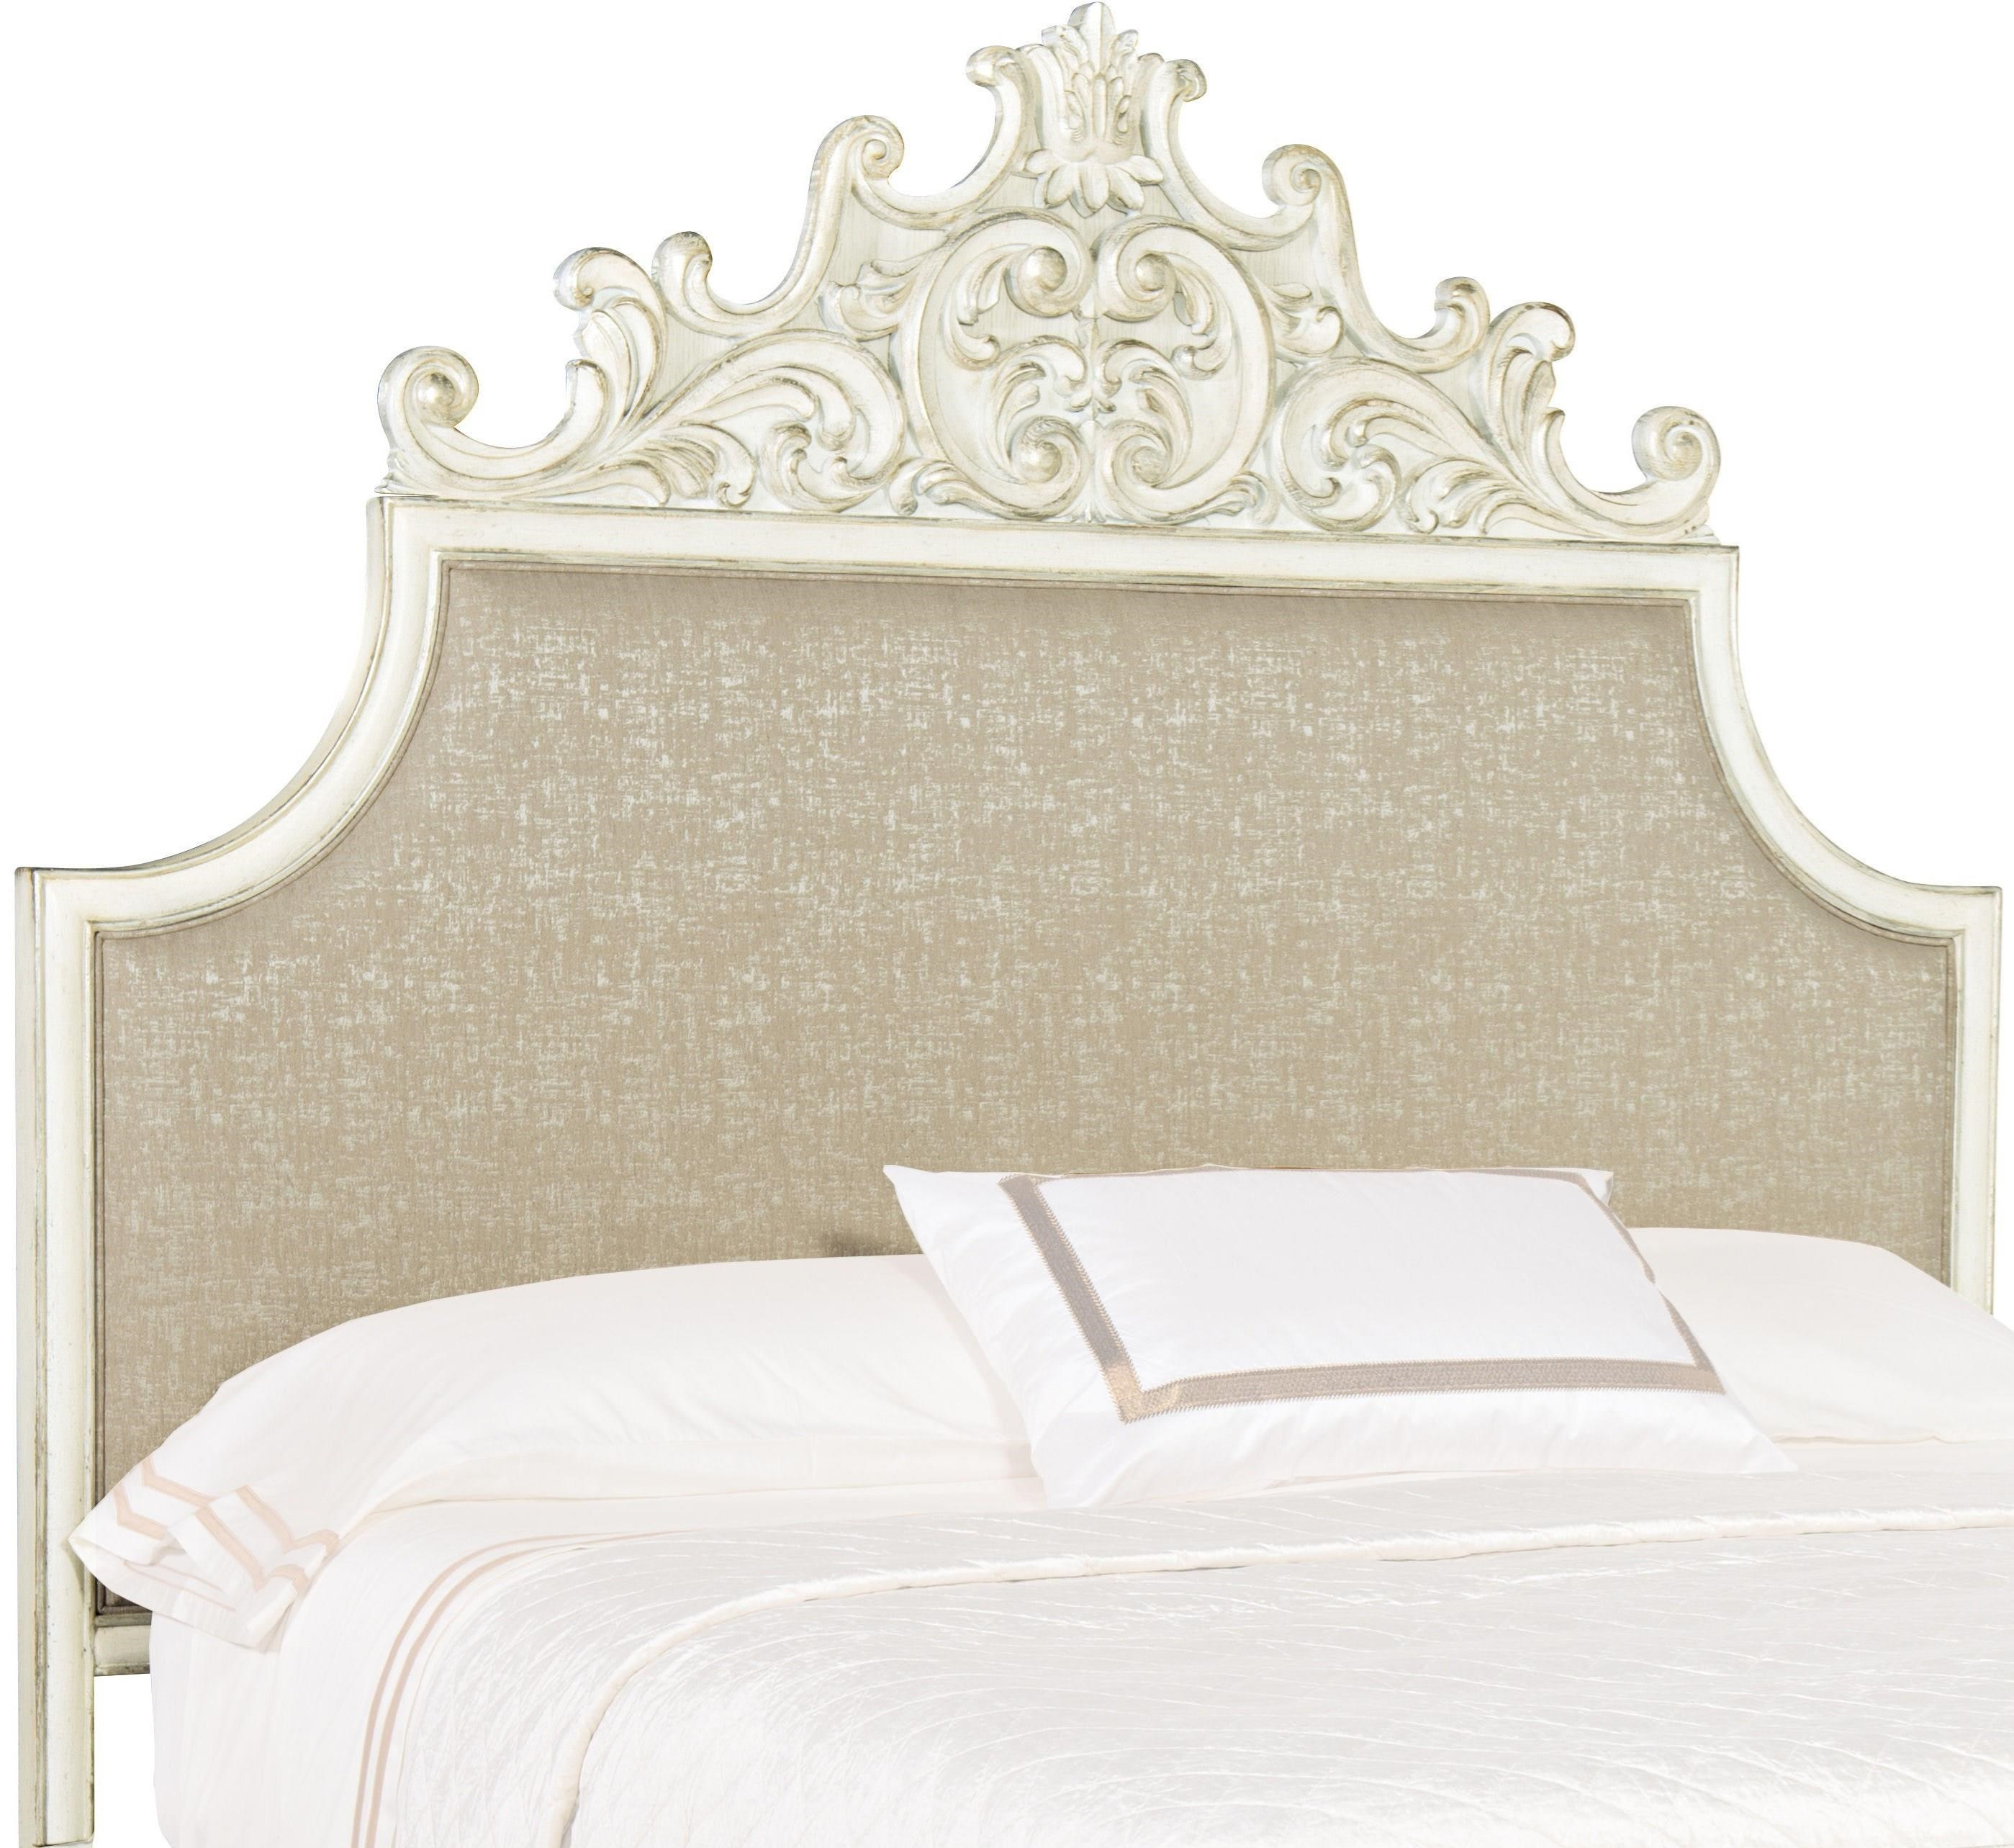 Sanctuary Anastasie Queen Upholstered Headboard by Hooker Furniture at Miller Waldrop Furniture and Decor